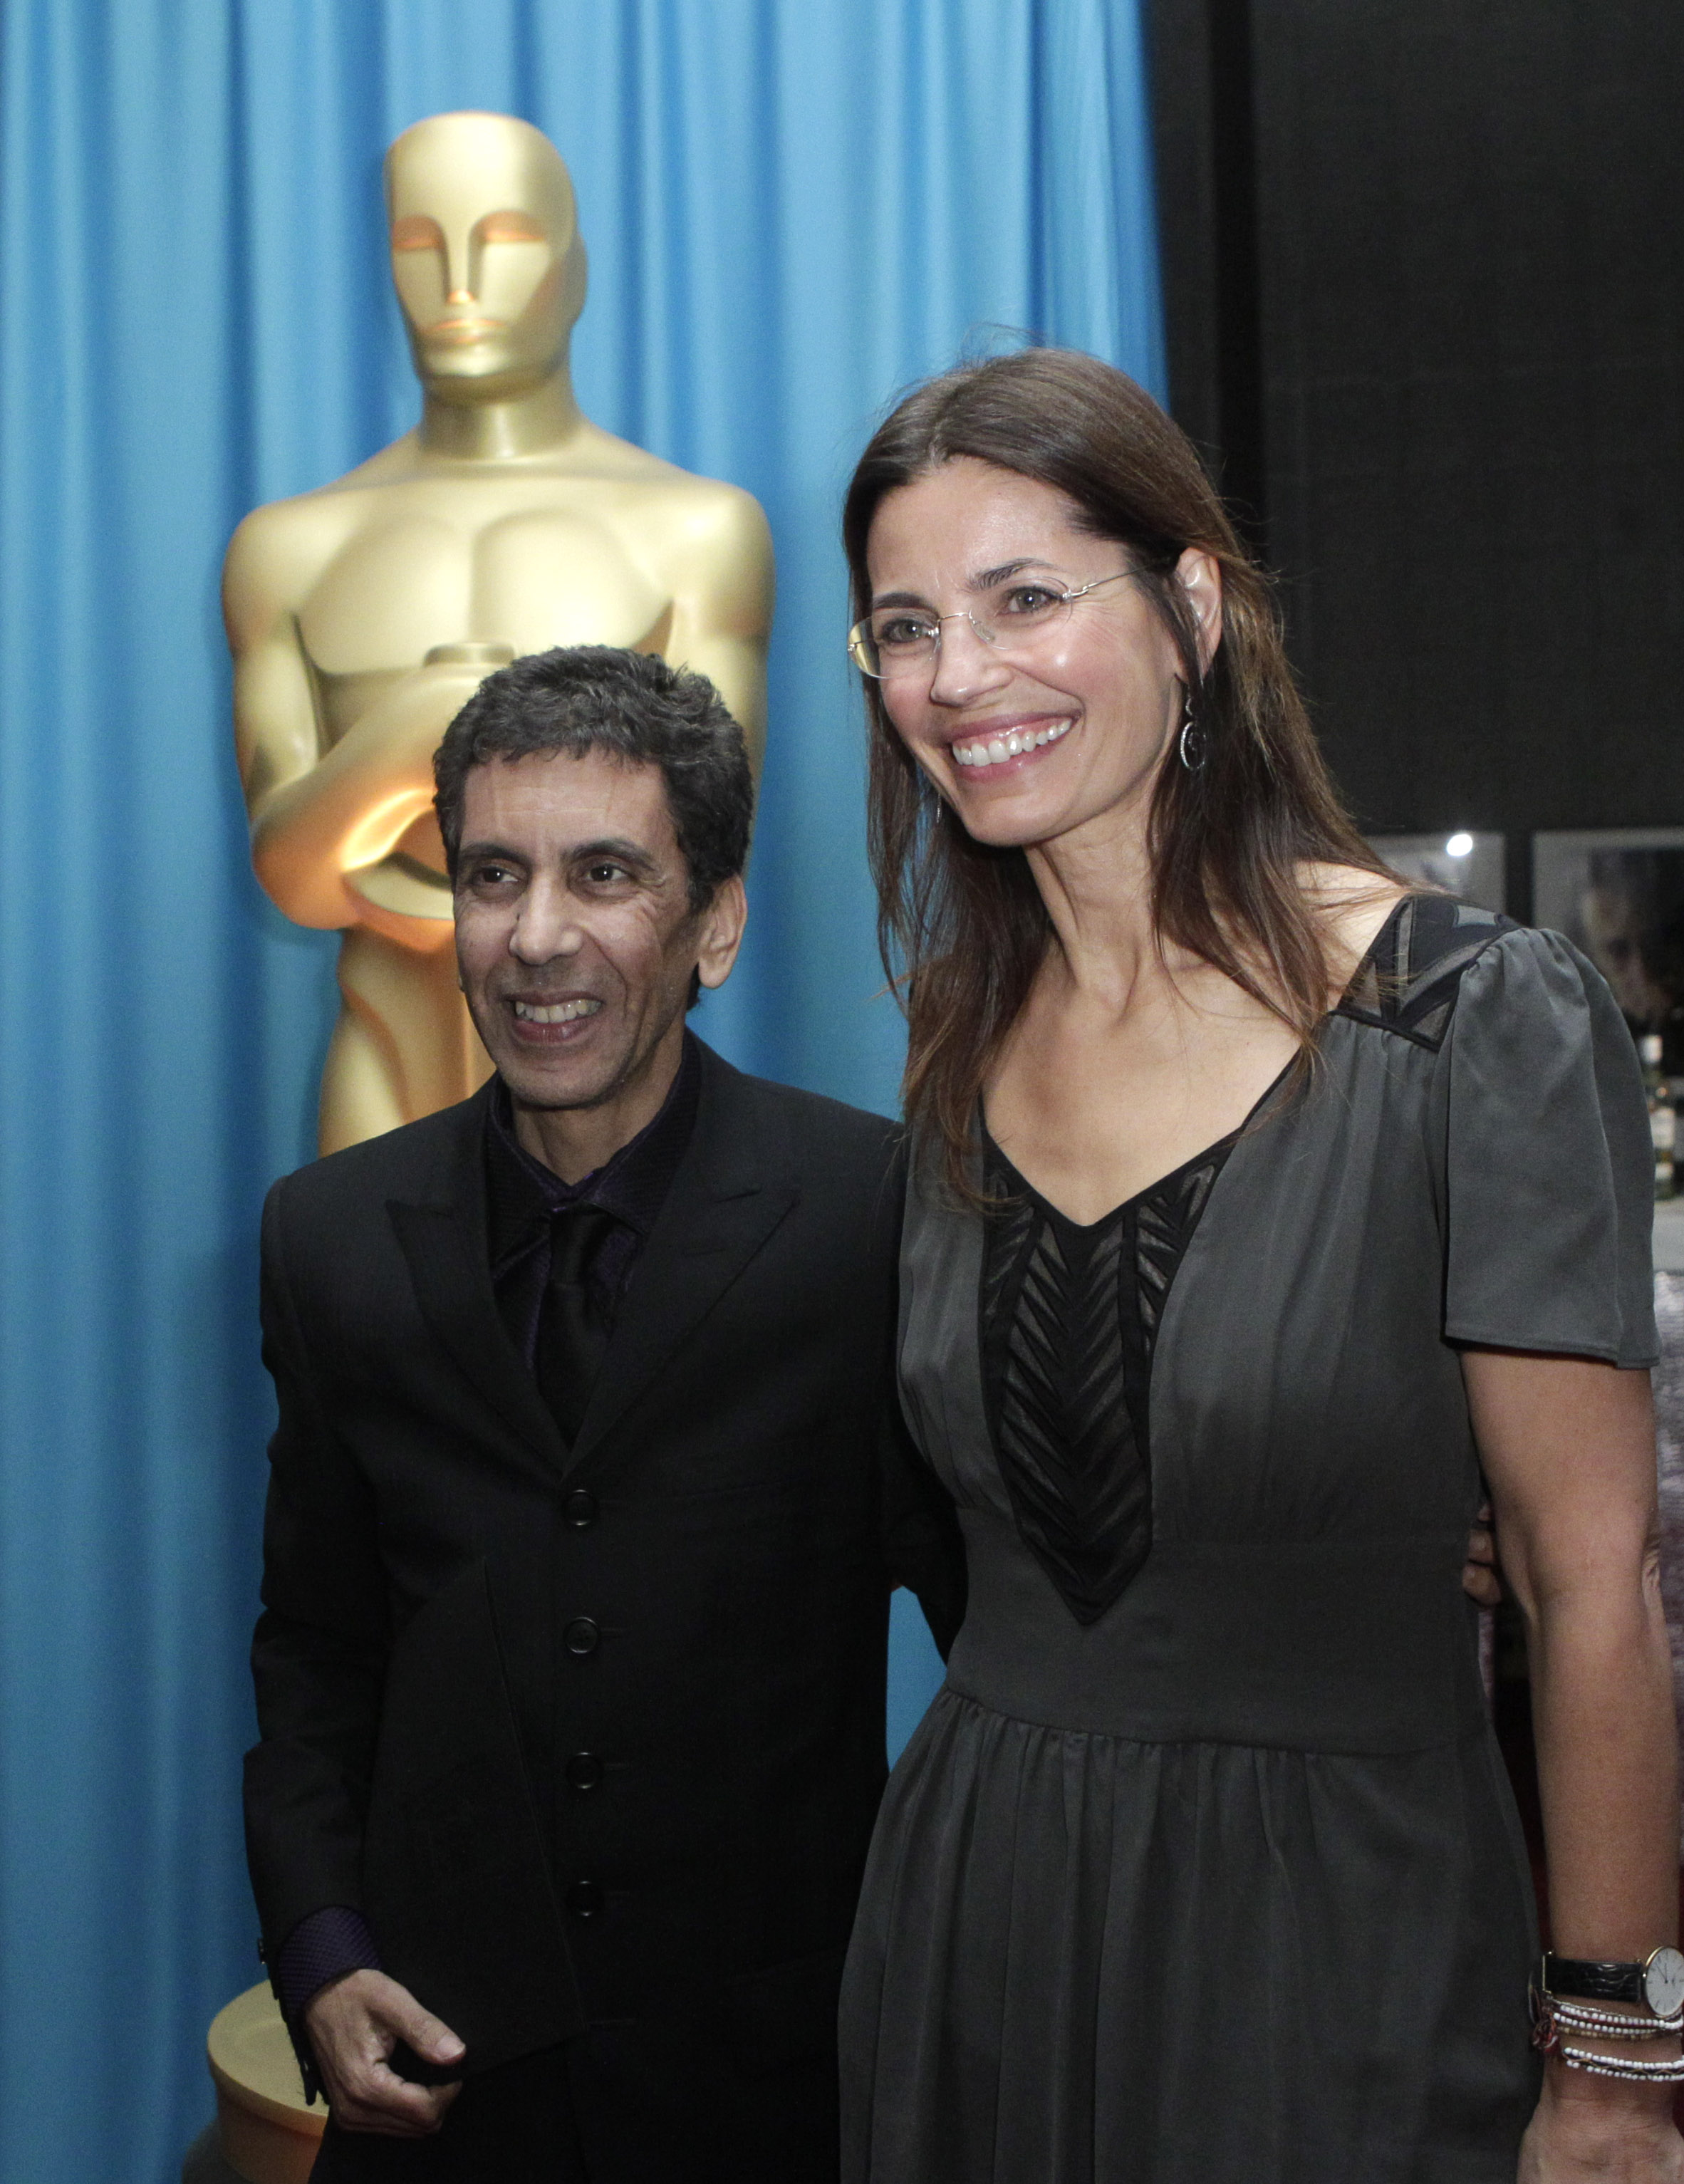 Screenwriter Susanna Grant (R) and Rachid Bouchareb, a French-Algerian director at the Foreign Language Award Directors reception in Beverly Hills, Calif. on Feb. 25, 2011.